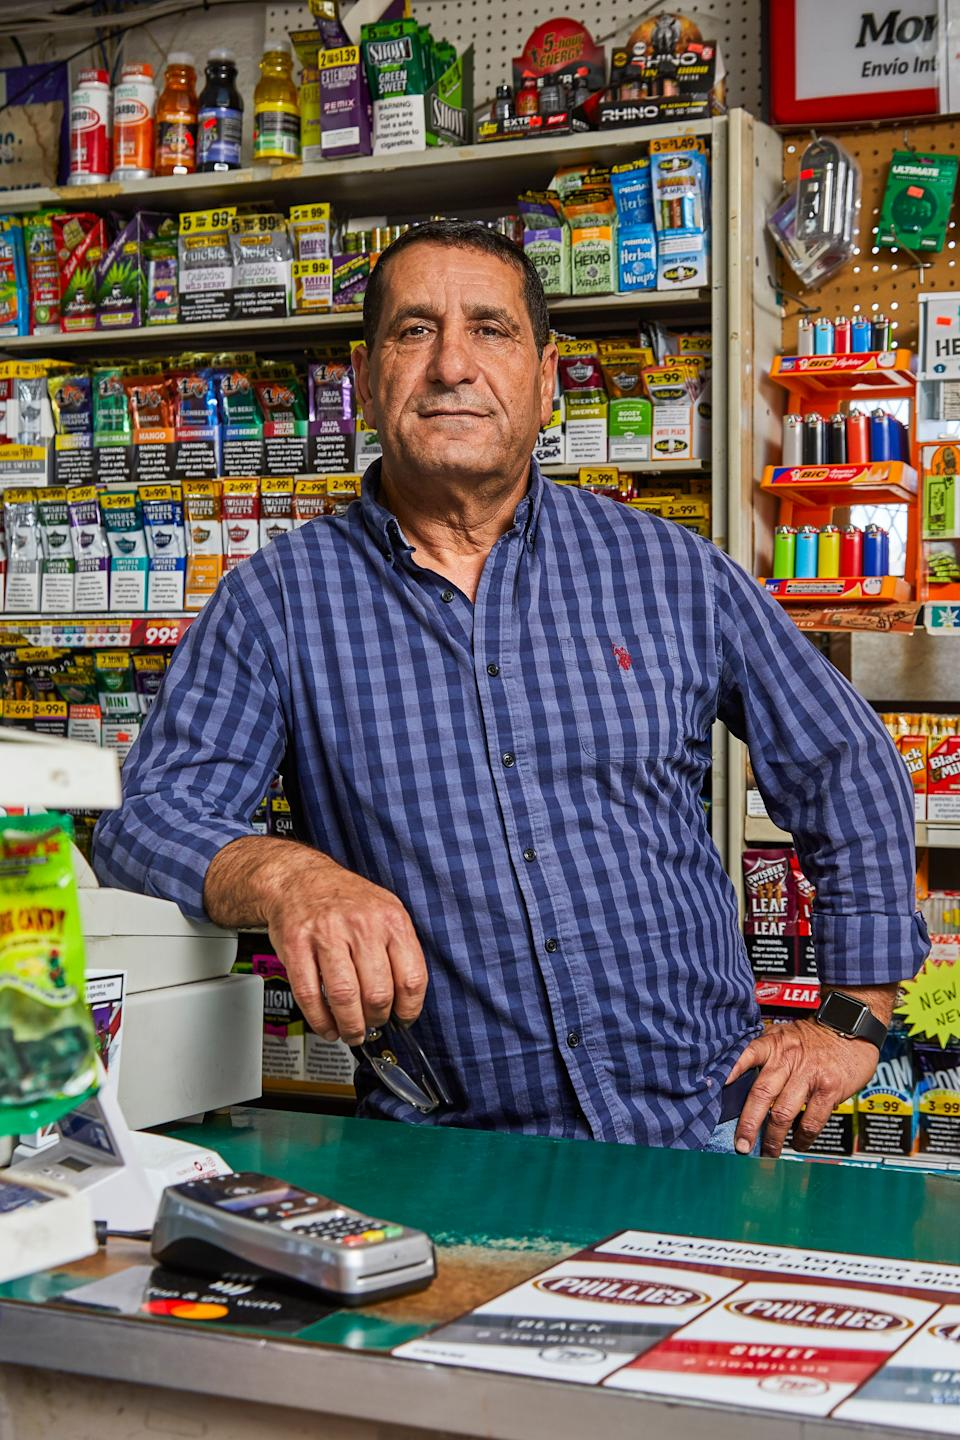 "<div class=""caption"">Ismail Ismail, owner of Highland Food Mart in San Antonio</div><cite class=""credit"">Photo by Hayden Spears</cite>"